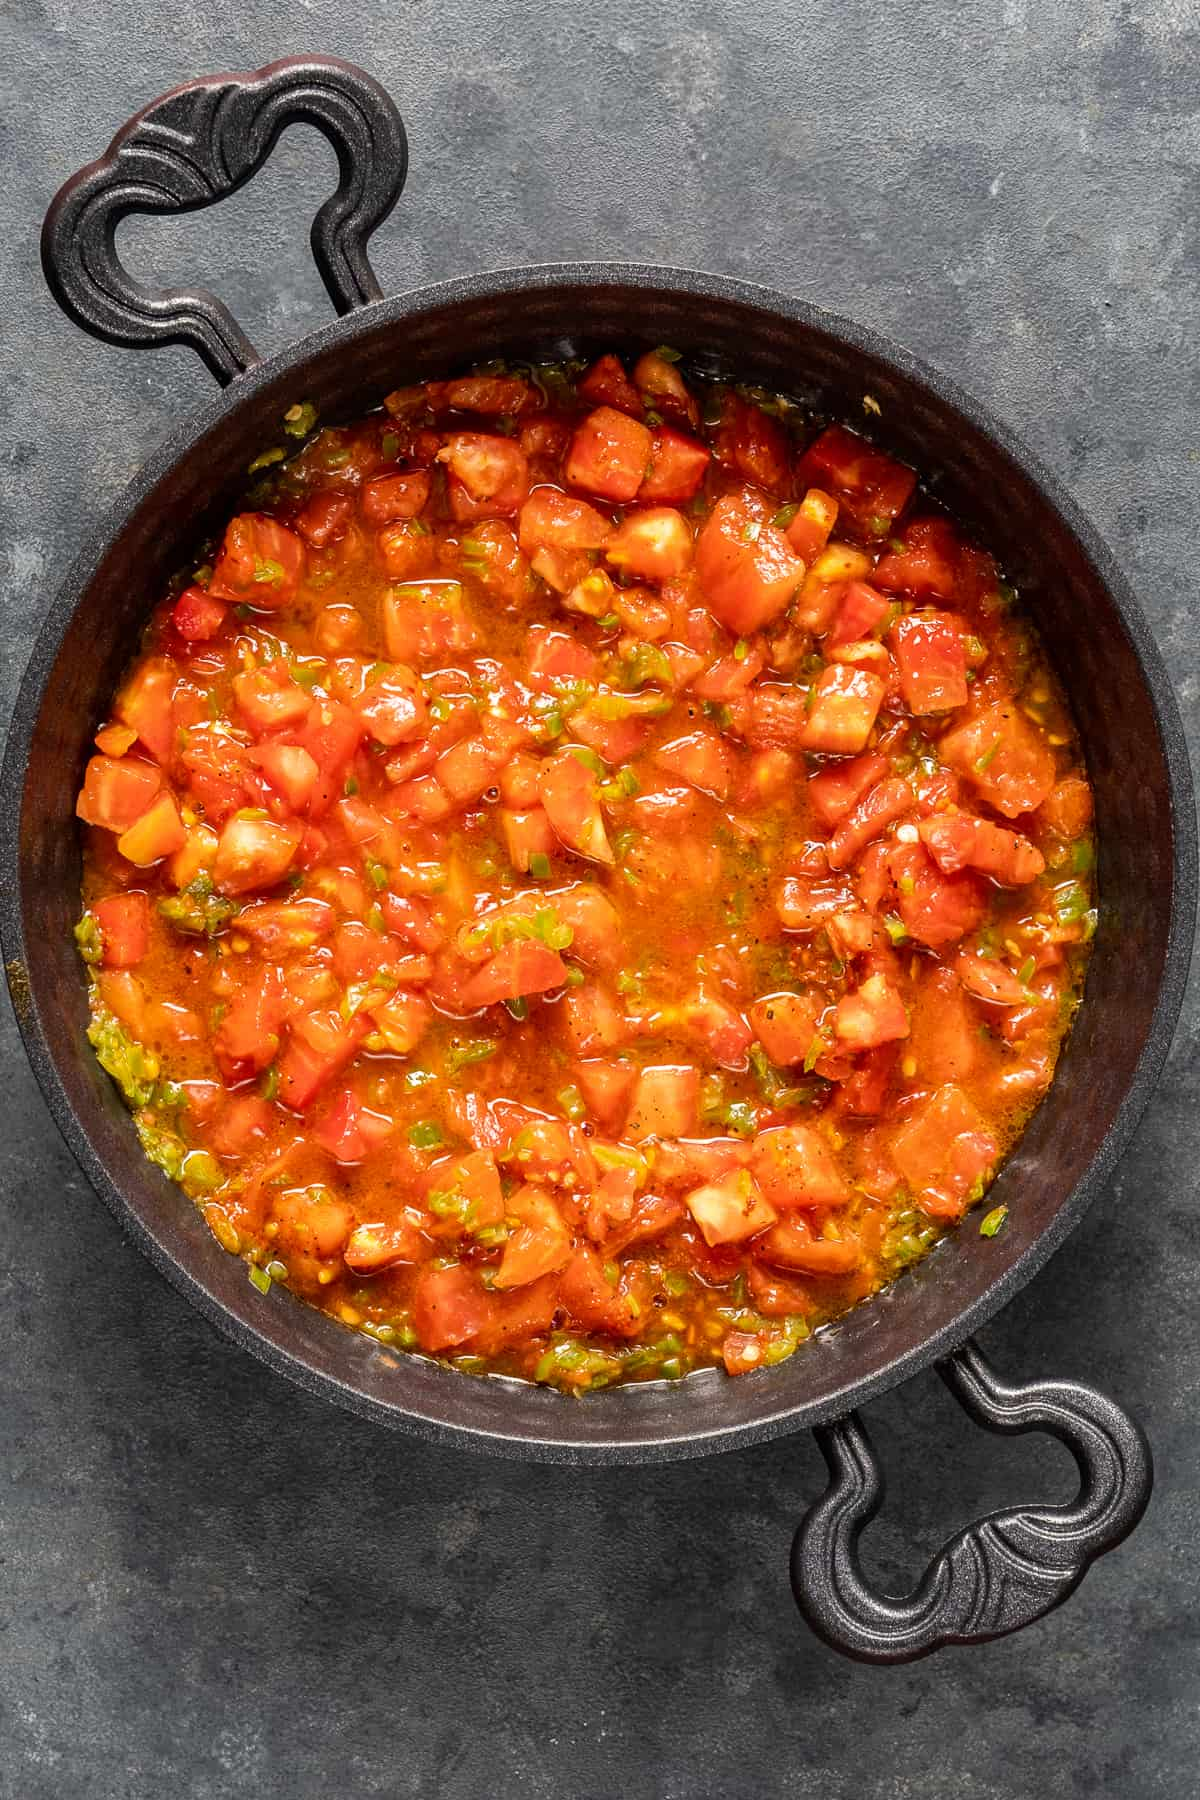 Diced tomatoes and green peppers cooking in a pan